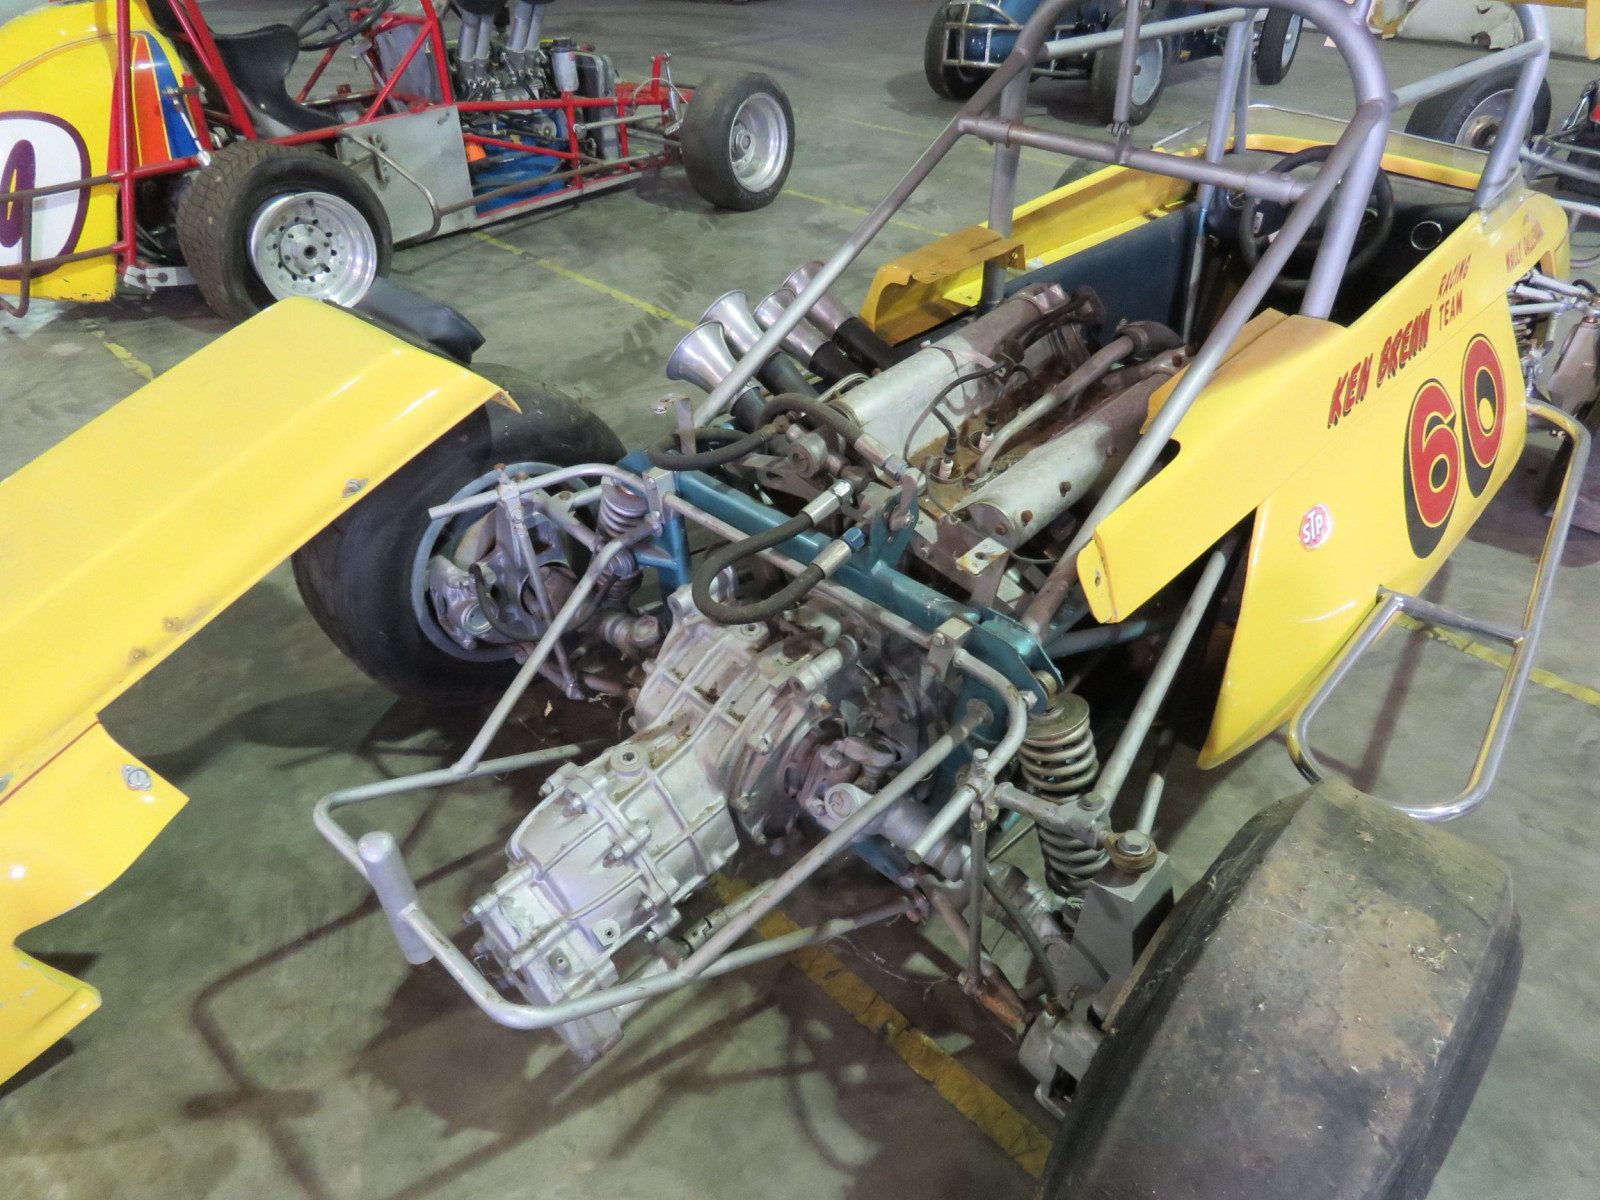 RARE Ken Brenn rear Engine 110 Beattie Midget Race Car - Image 12